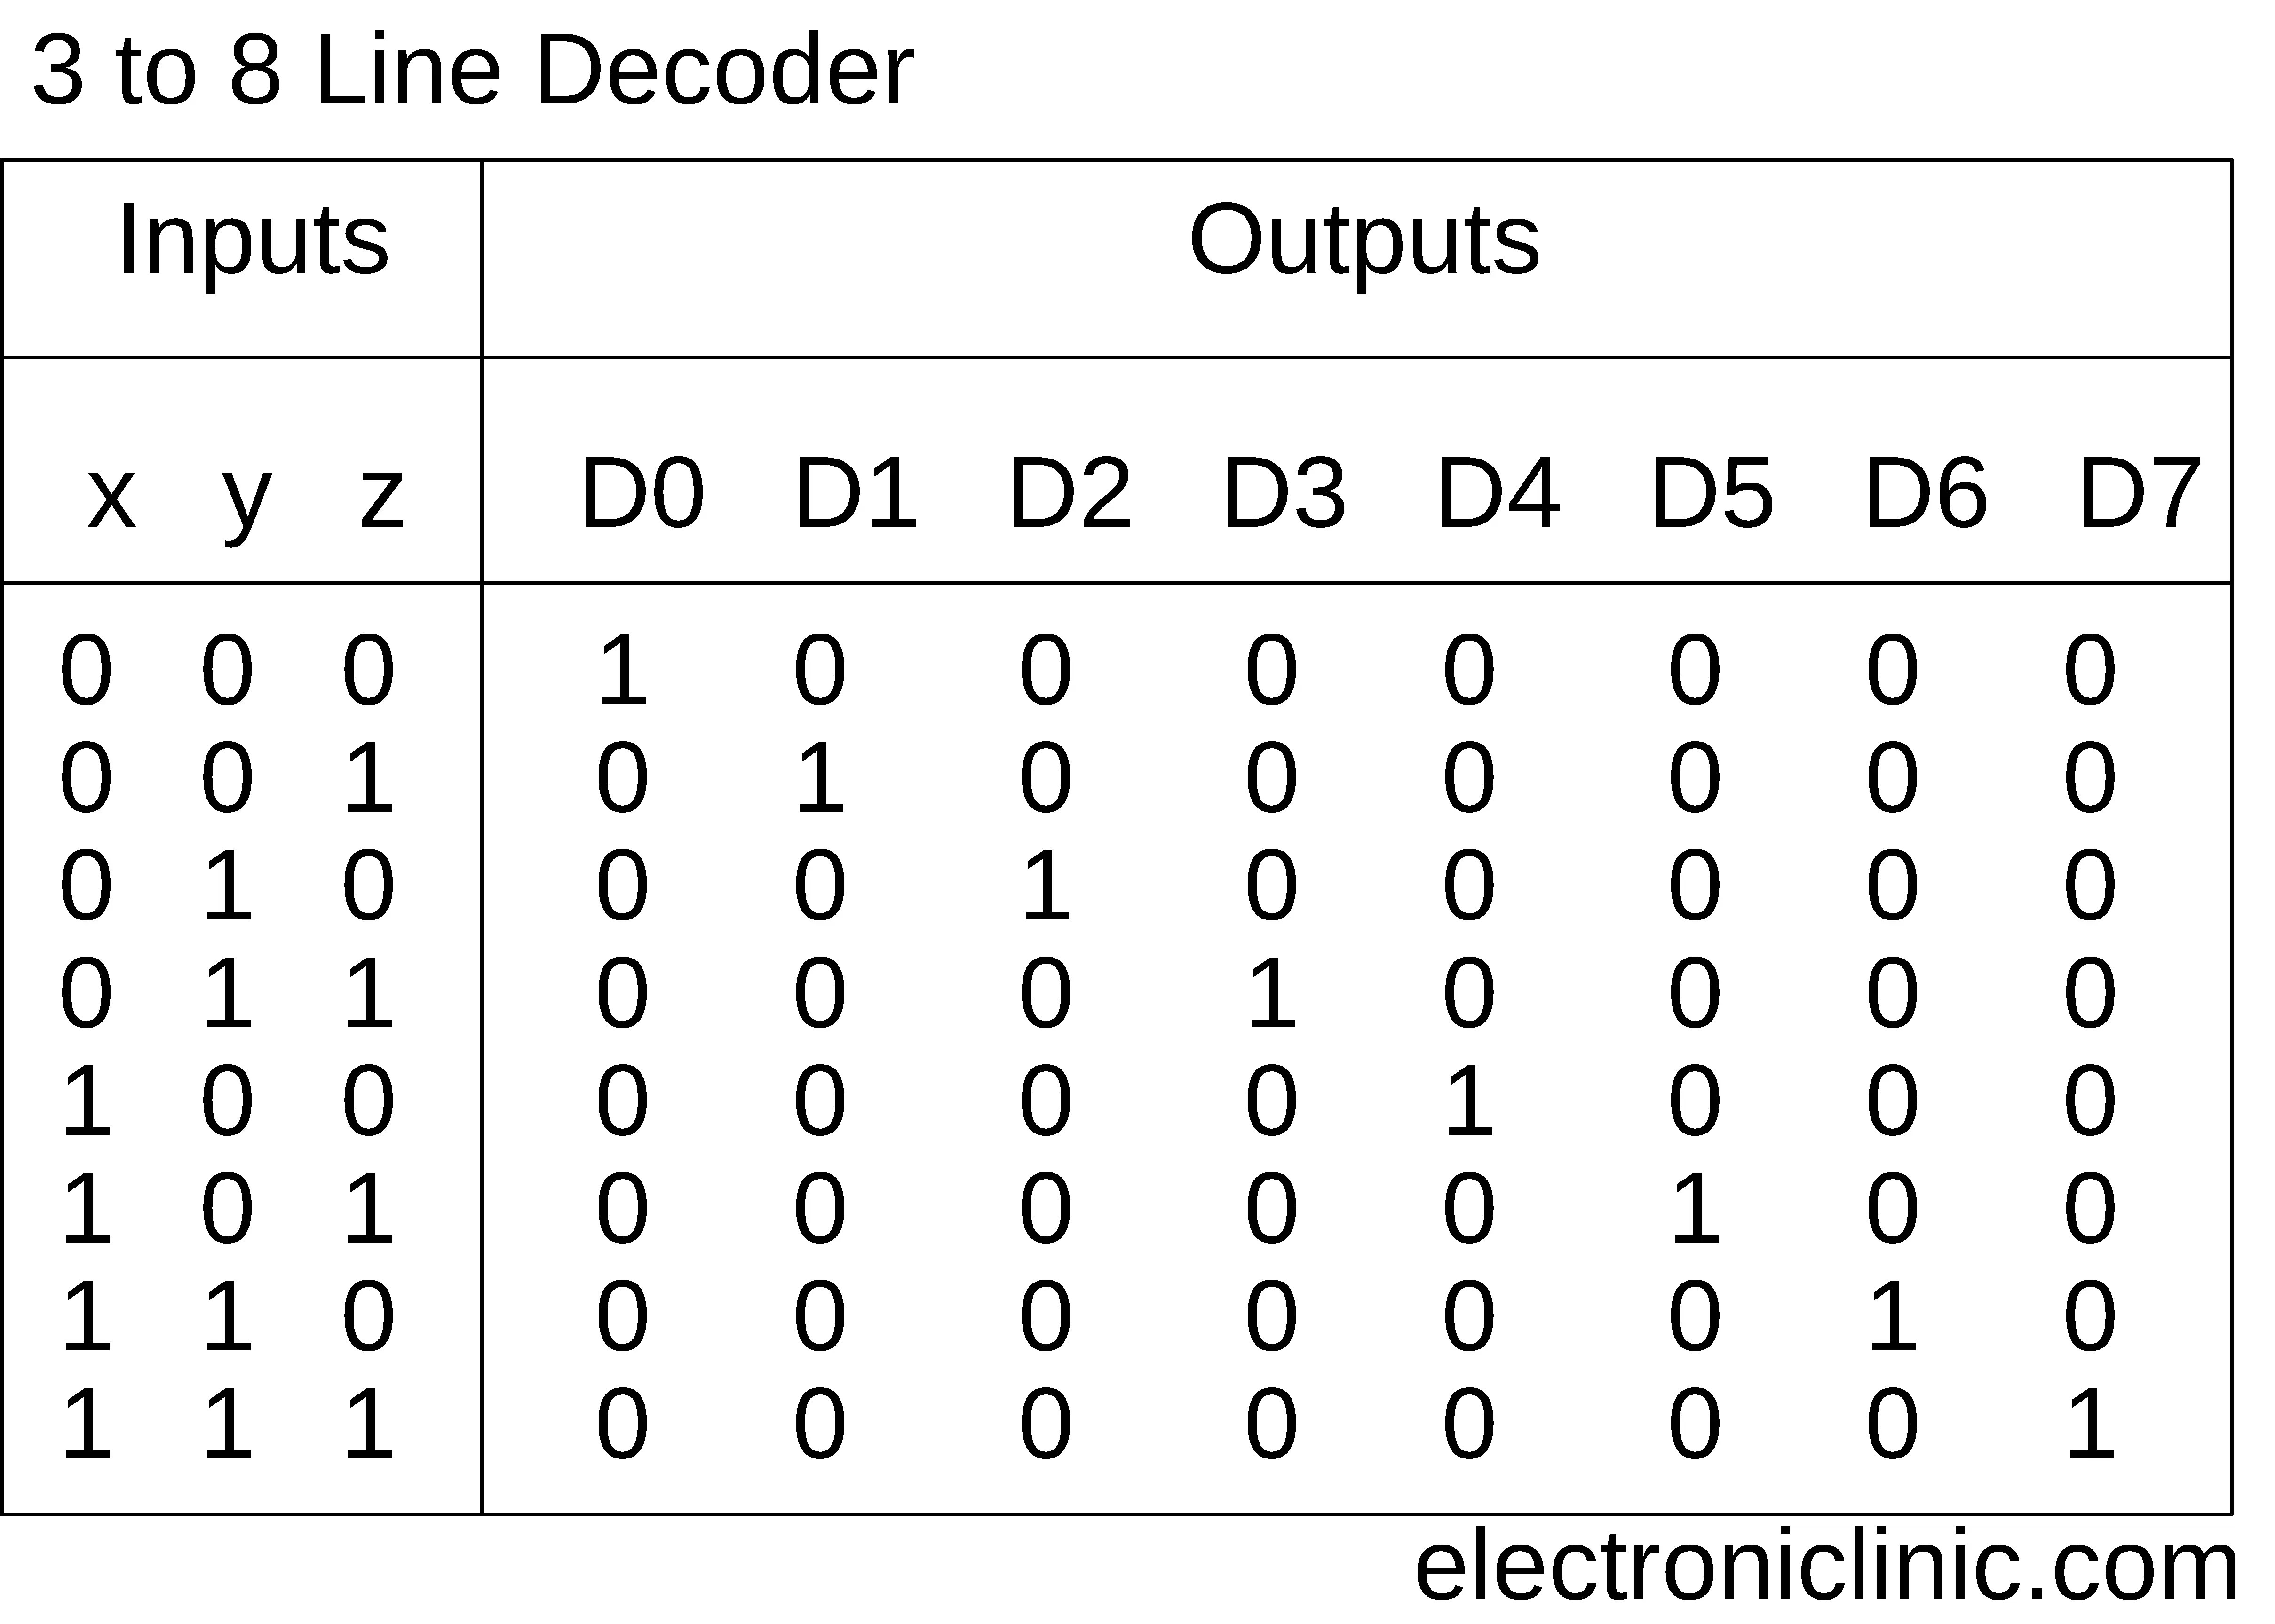 Decoder, 3 to 8 Decoder Block Diagram, Truth Table, and Logic DiagramElectronic Clinic